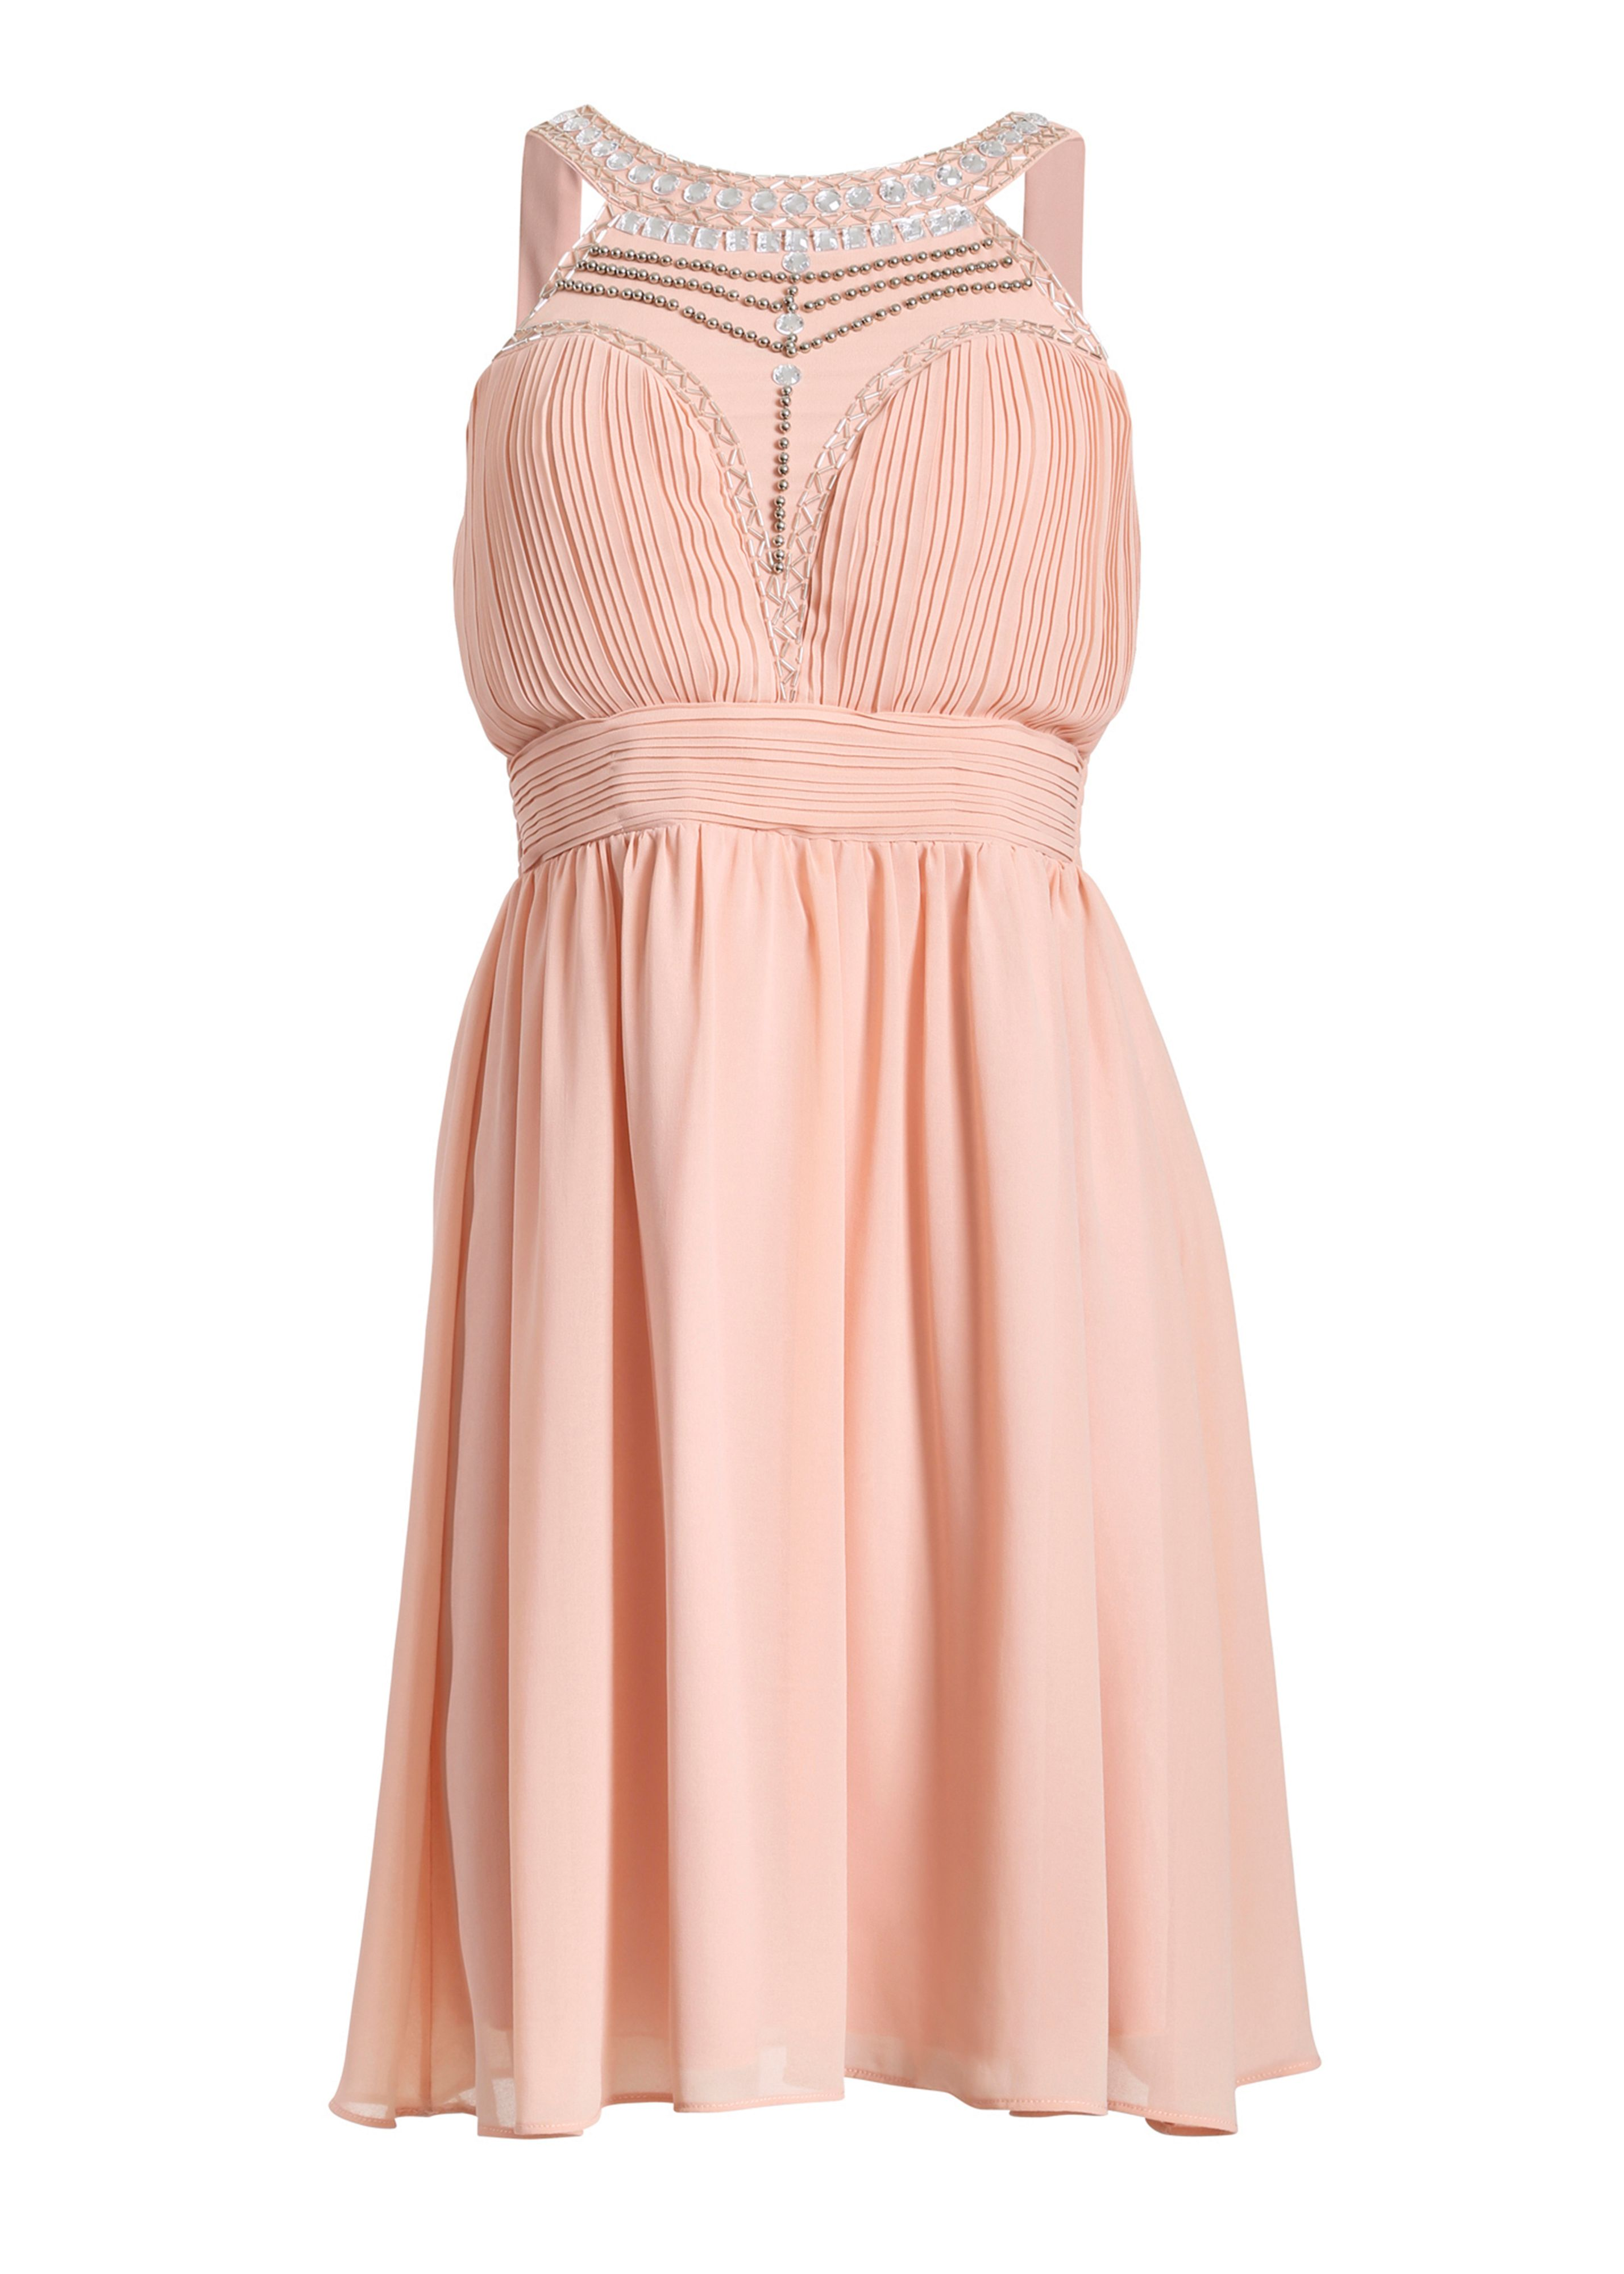 Find downton abbey style dresses in the uk for Quality classic house of fraser